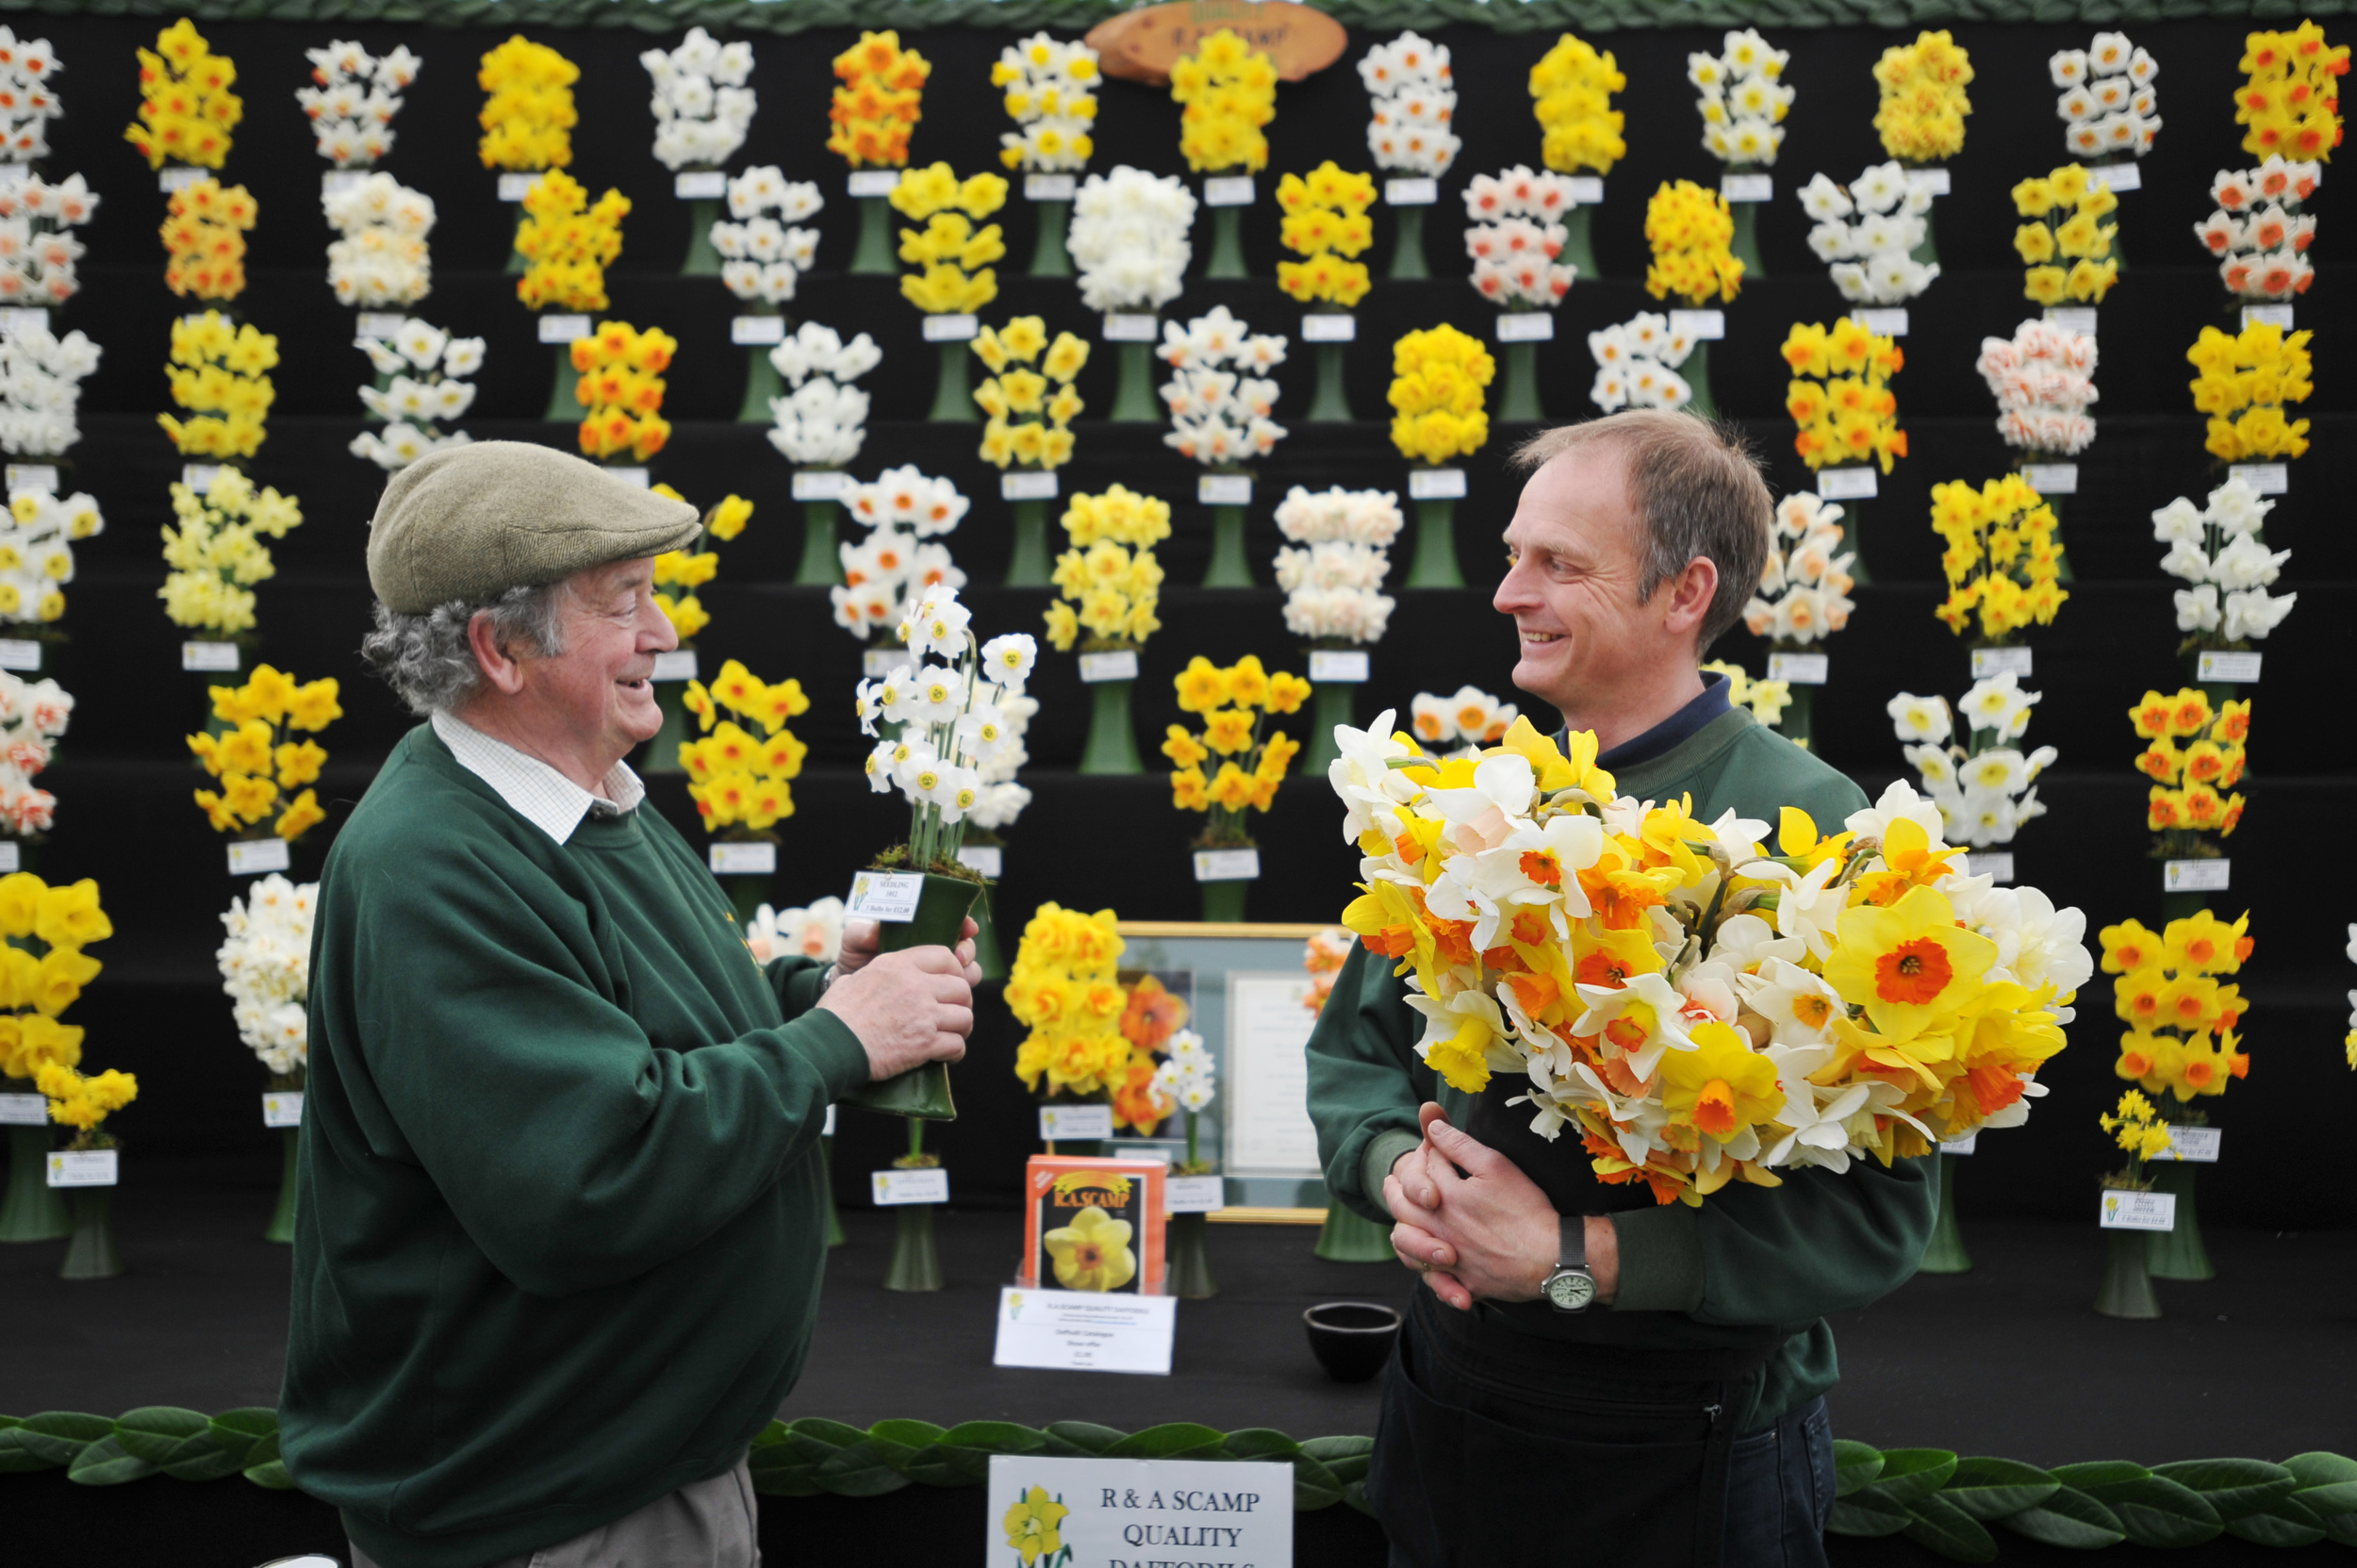 Ron Scamp (left) and his son Adrian with their daffodils at the RHS Flower Show Cardiff (Bethany Clarke/RHS/PA)